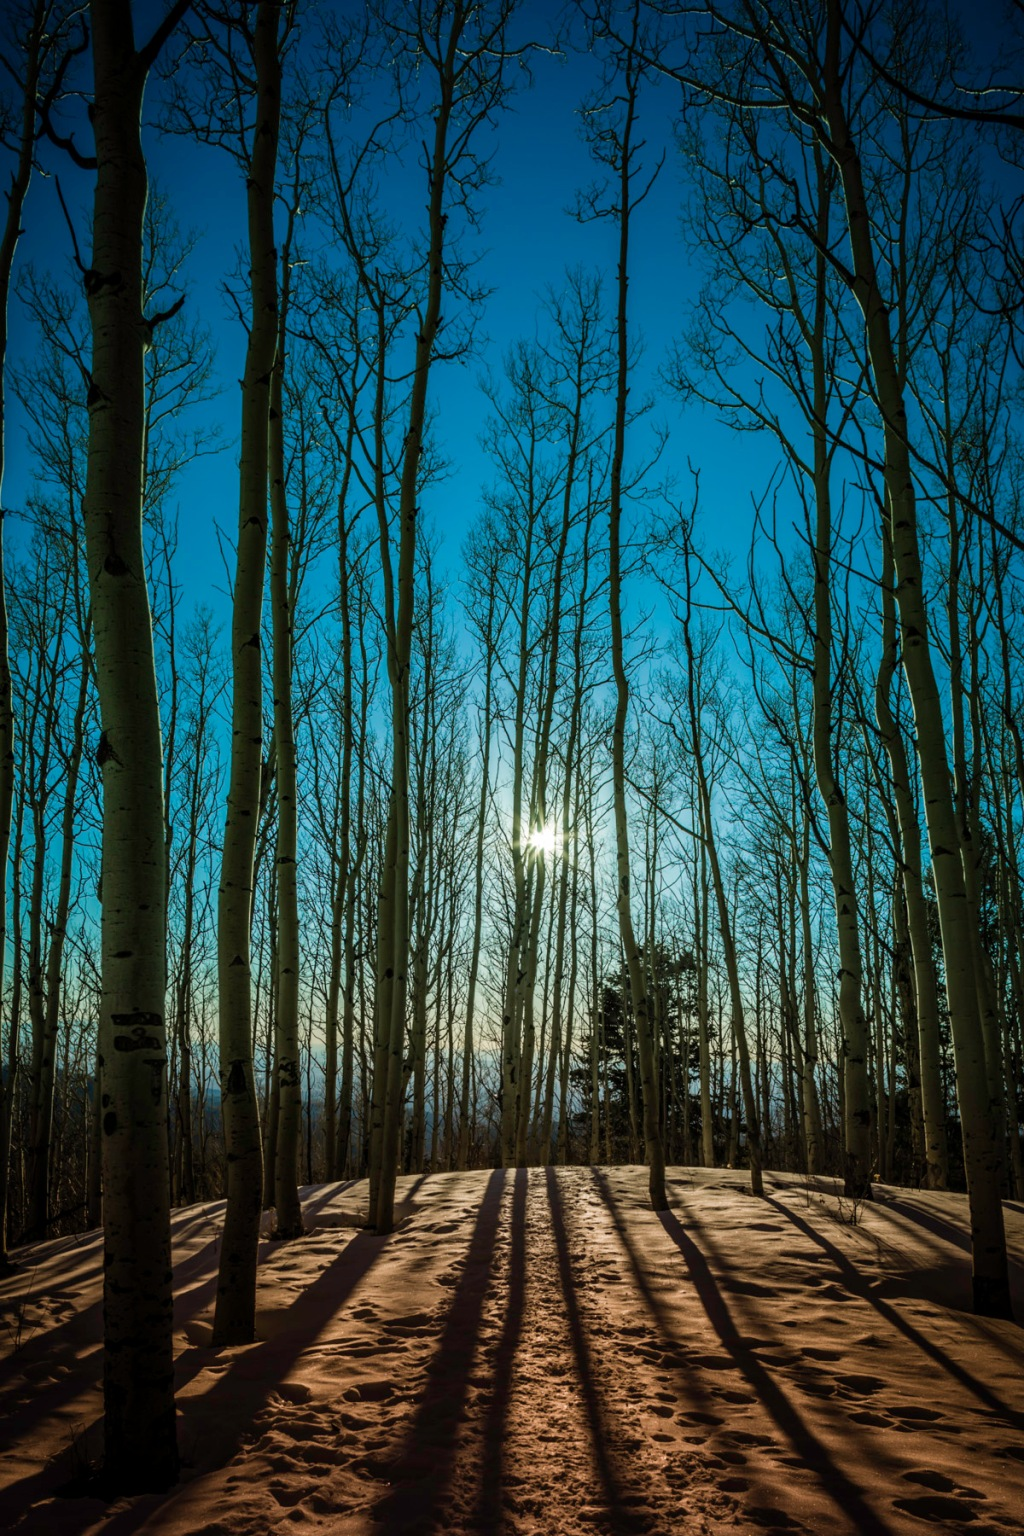 Backlight-Aspens-I-Mabry-Campbell